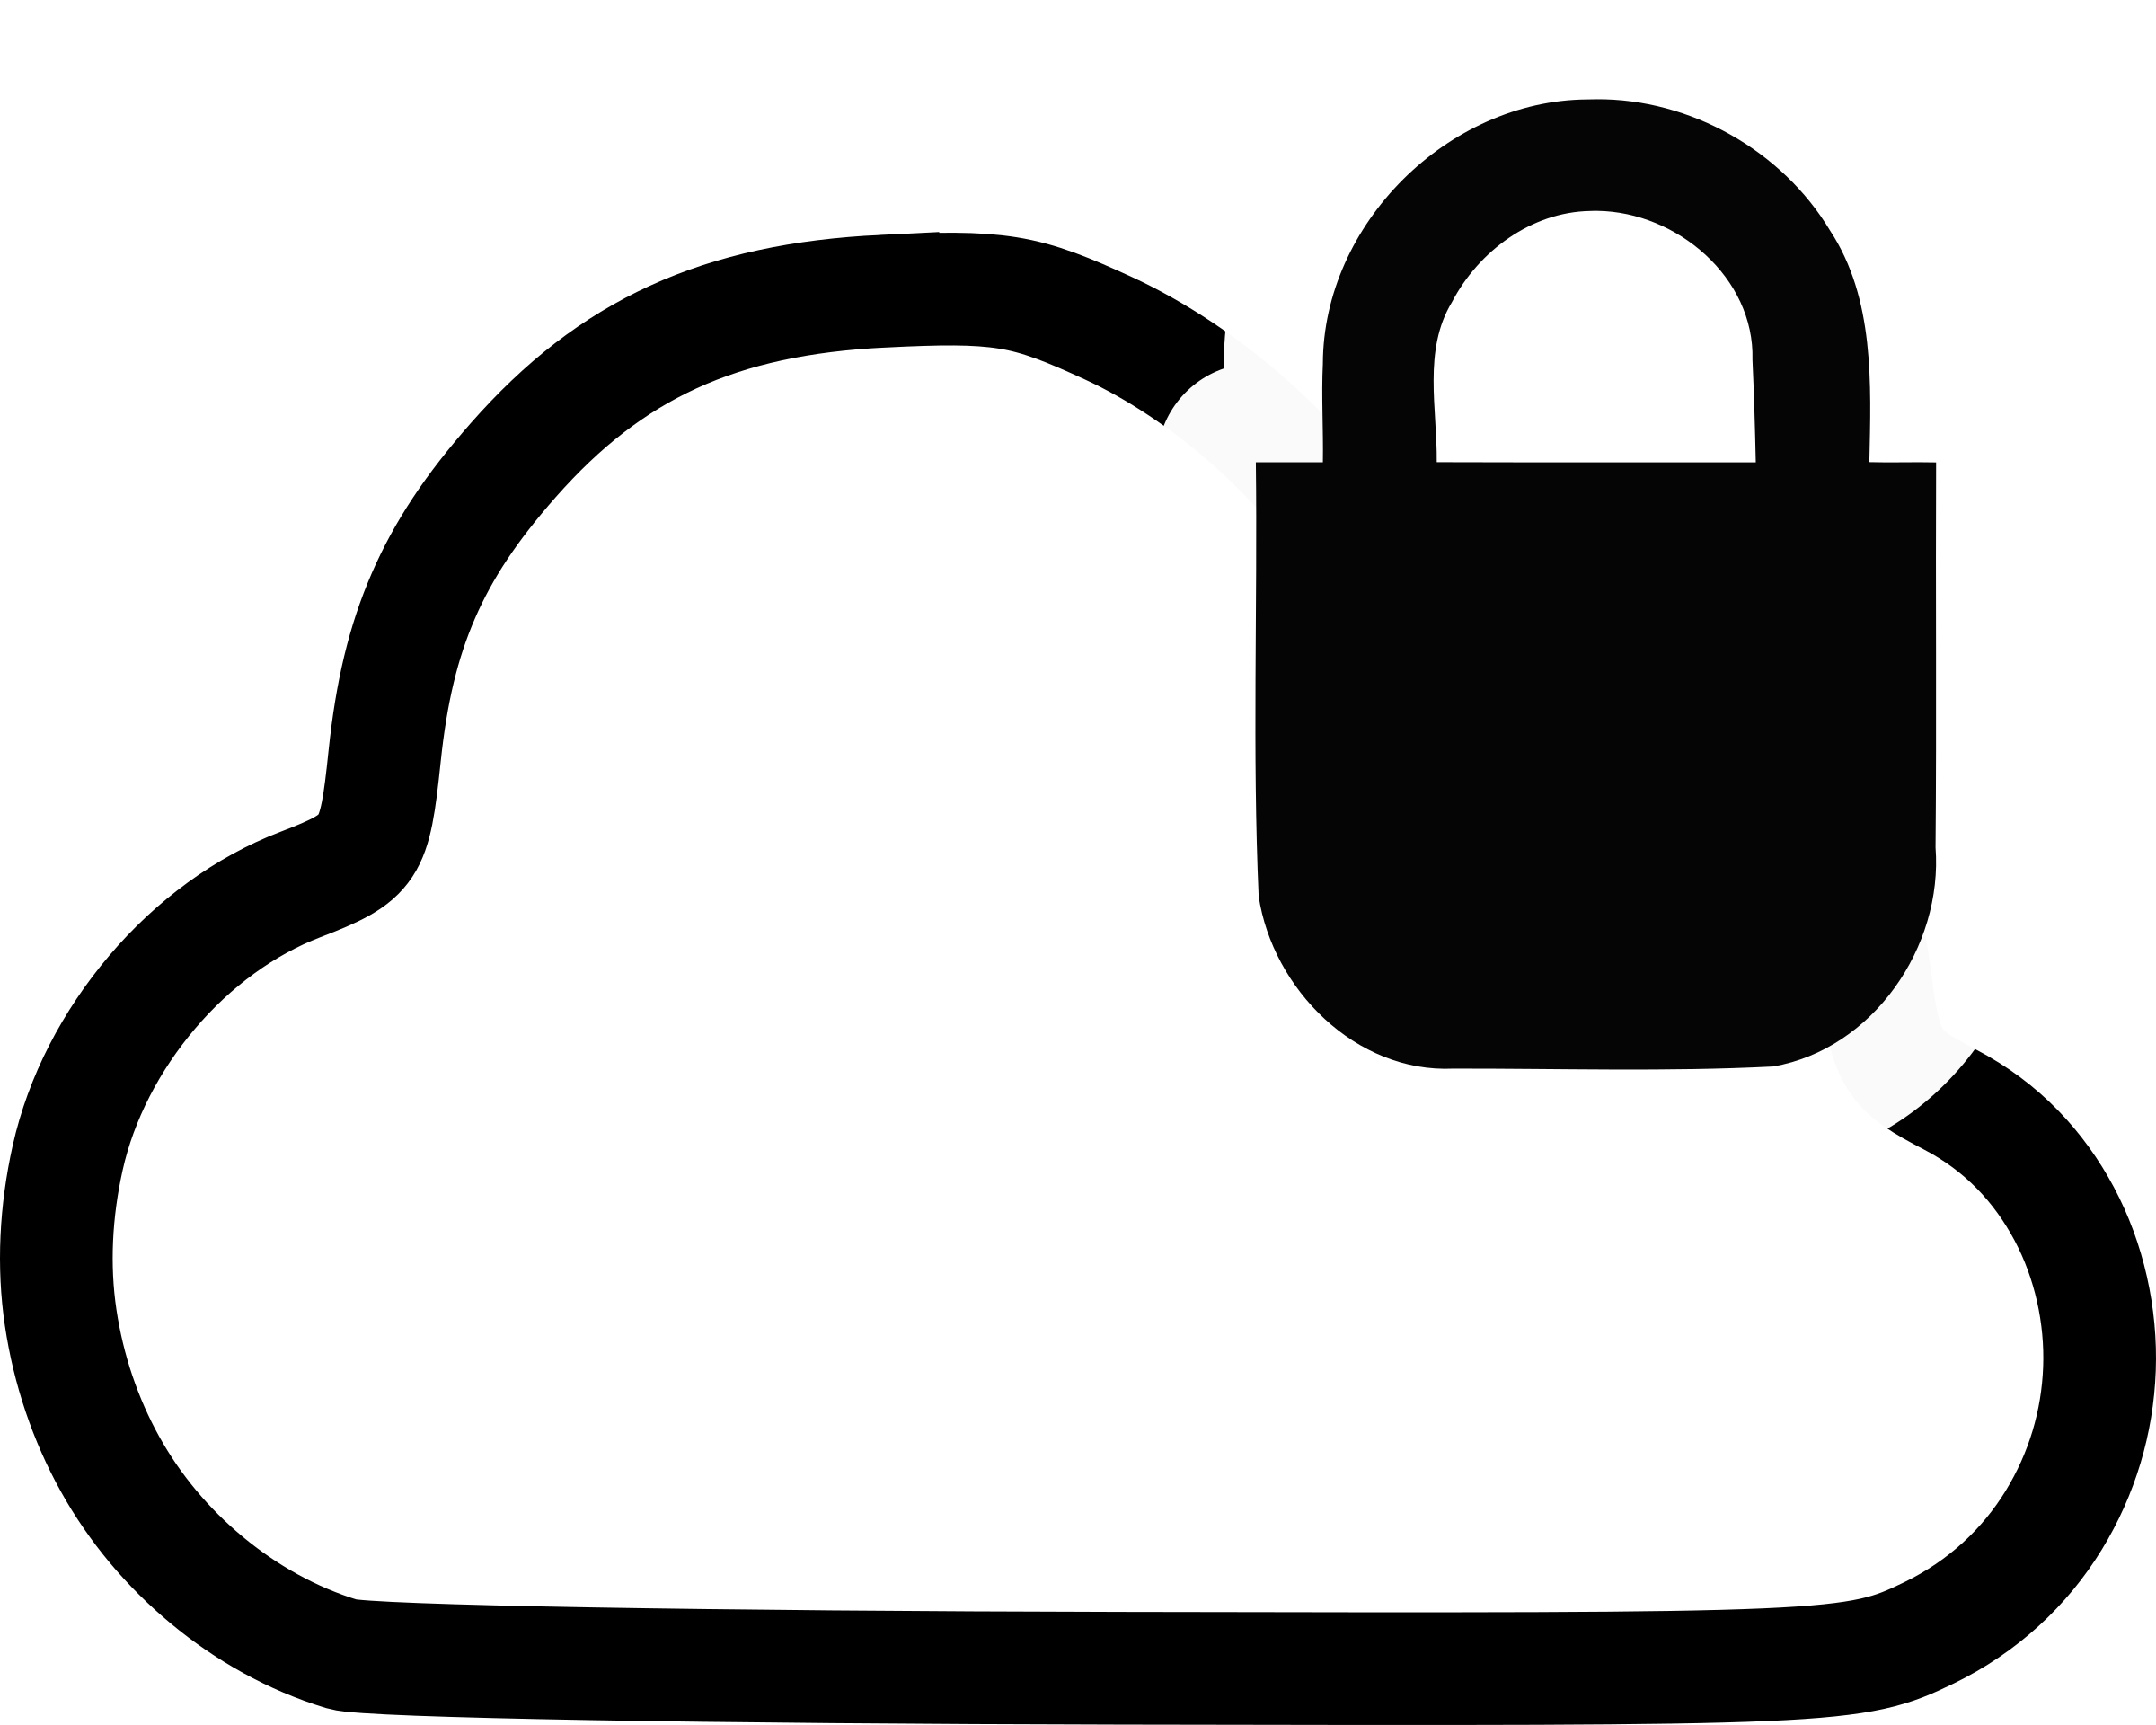 Cloud png vector. Secure icons free and